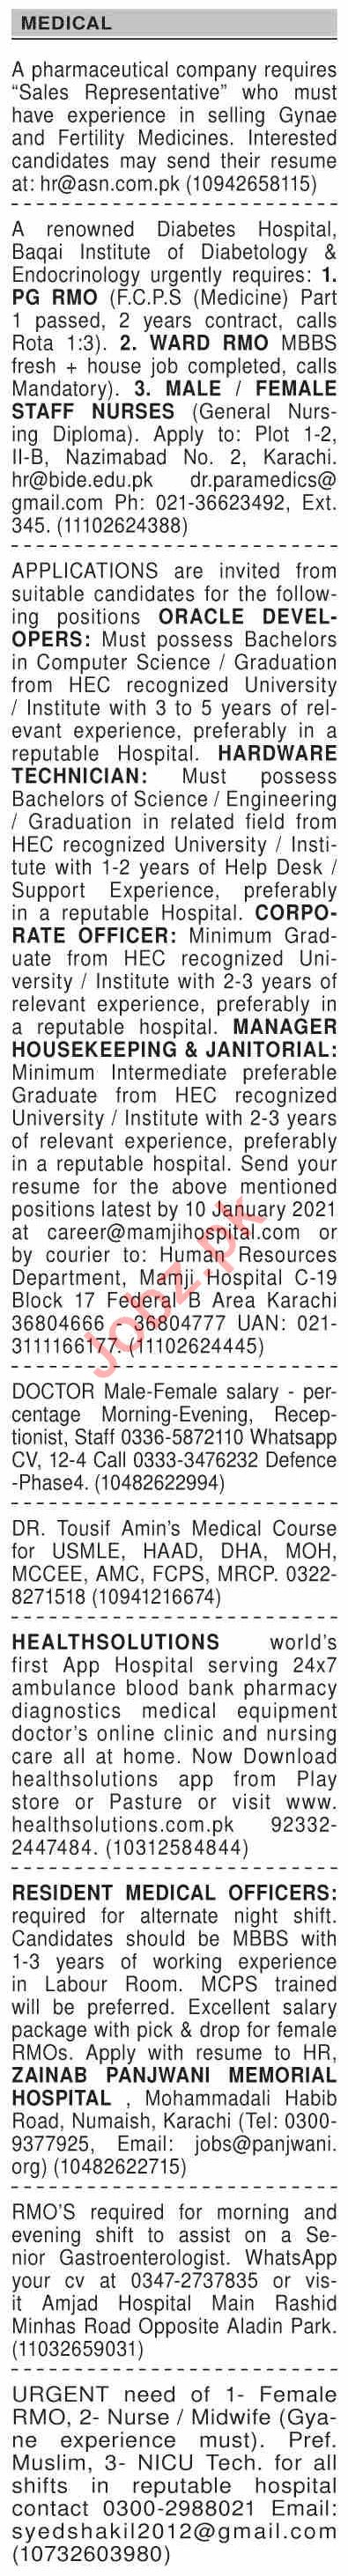 Dawn Sunday Classified Ads 3rd Jan 2021 for Medical Staff